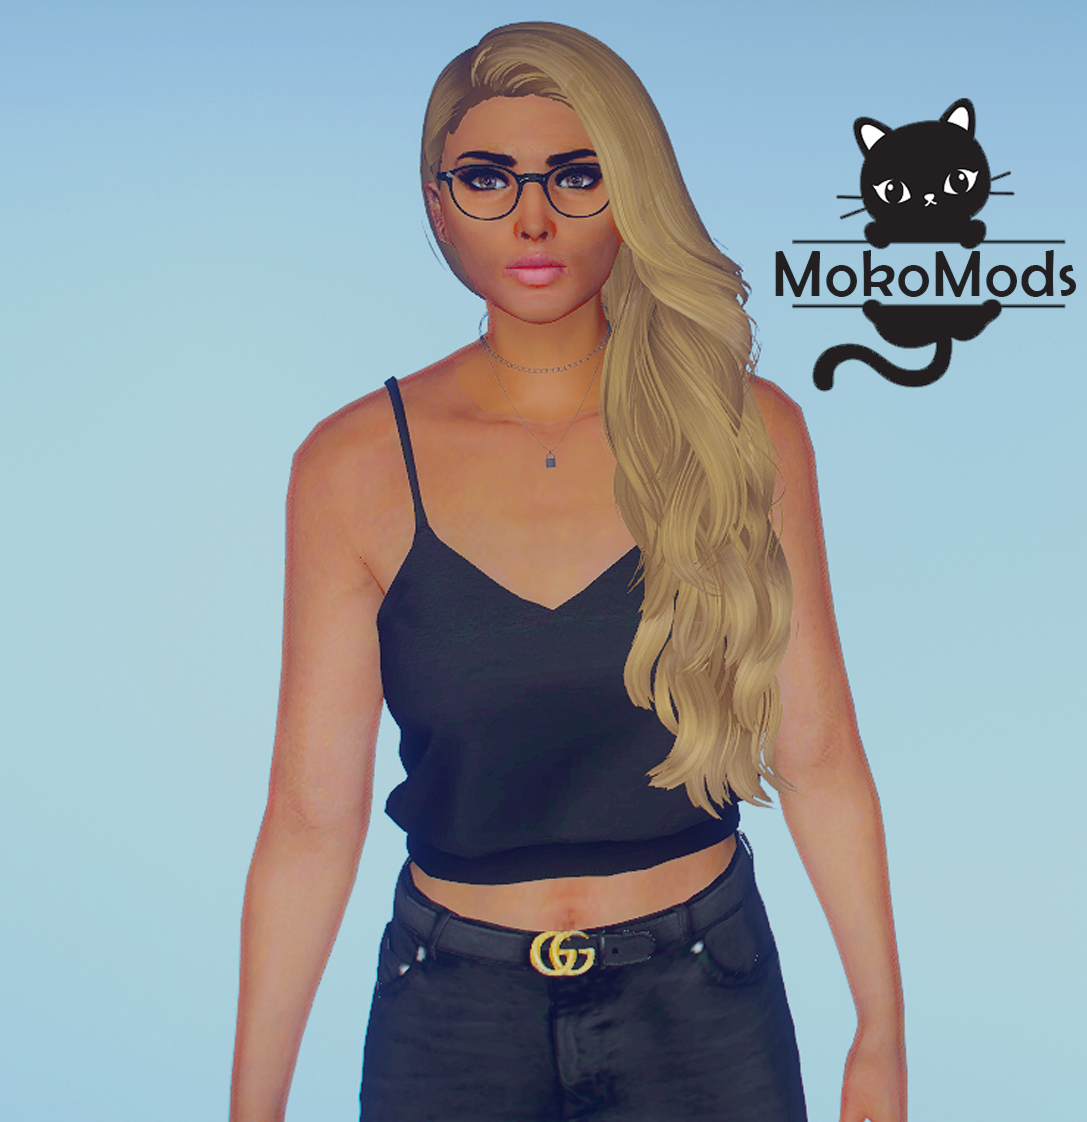 Knot Cropped Top for MP Female 1.0